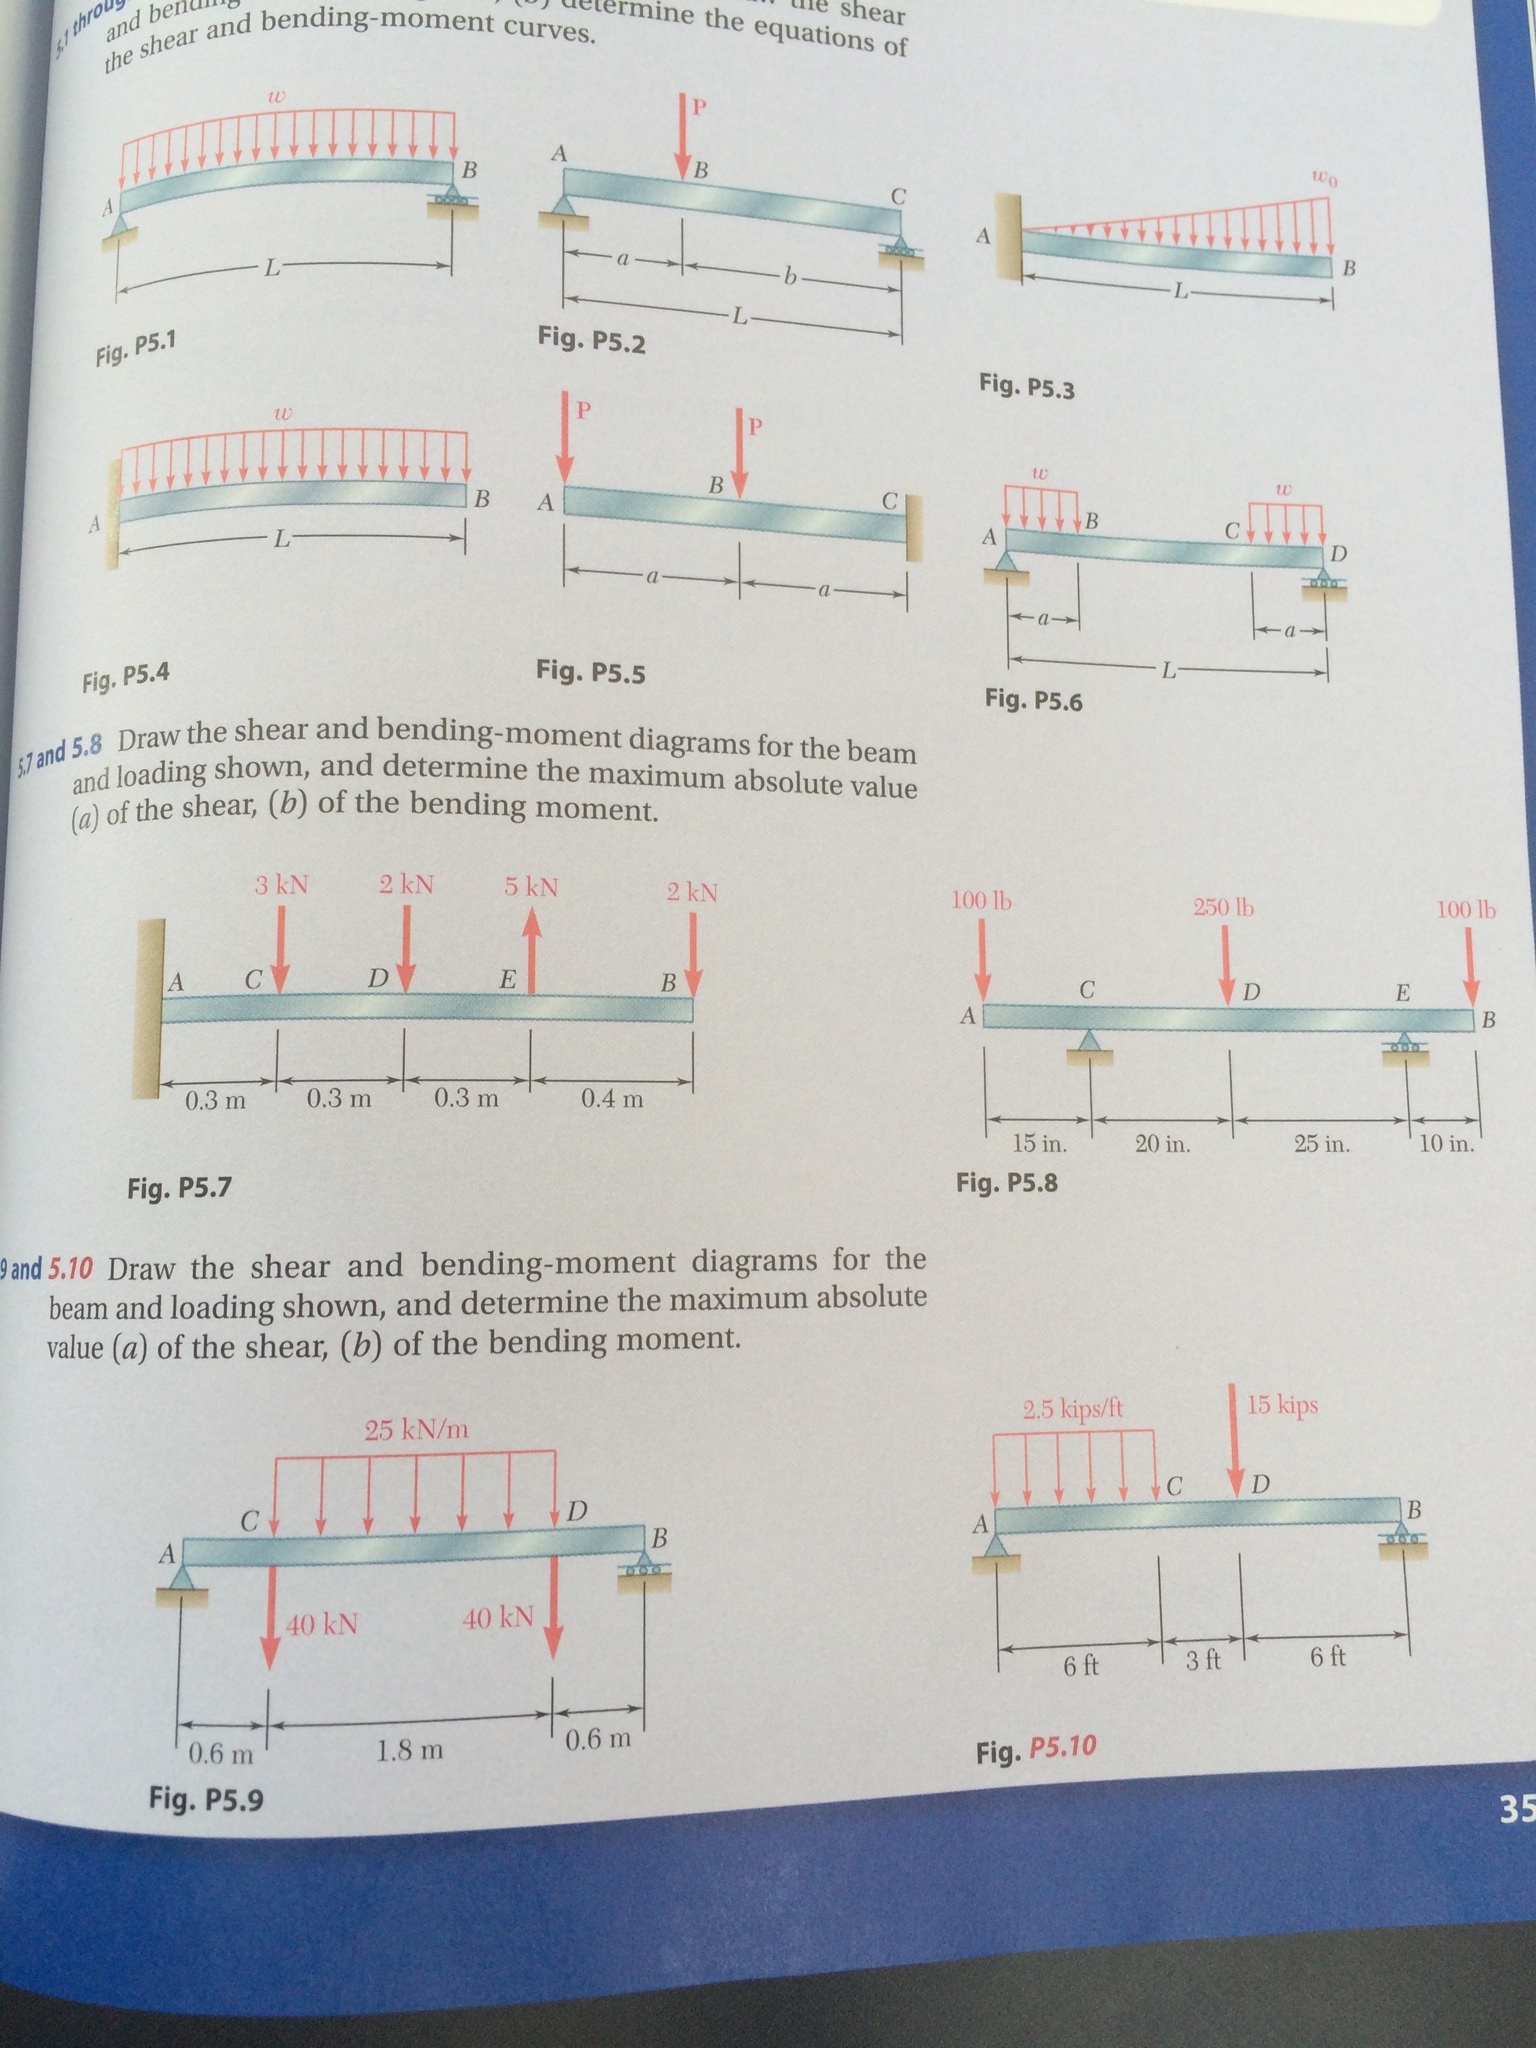 Solved 57 And 58 Draw The Shear Bending Moment Diag Force Diagrams Cheggcom See More Show Transcribed Image Text For Beam Loading Shown Determine Maximum